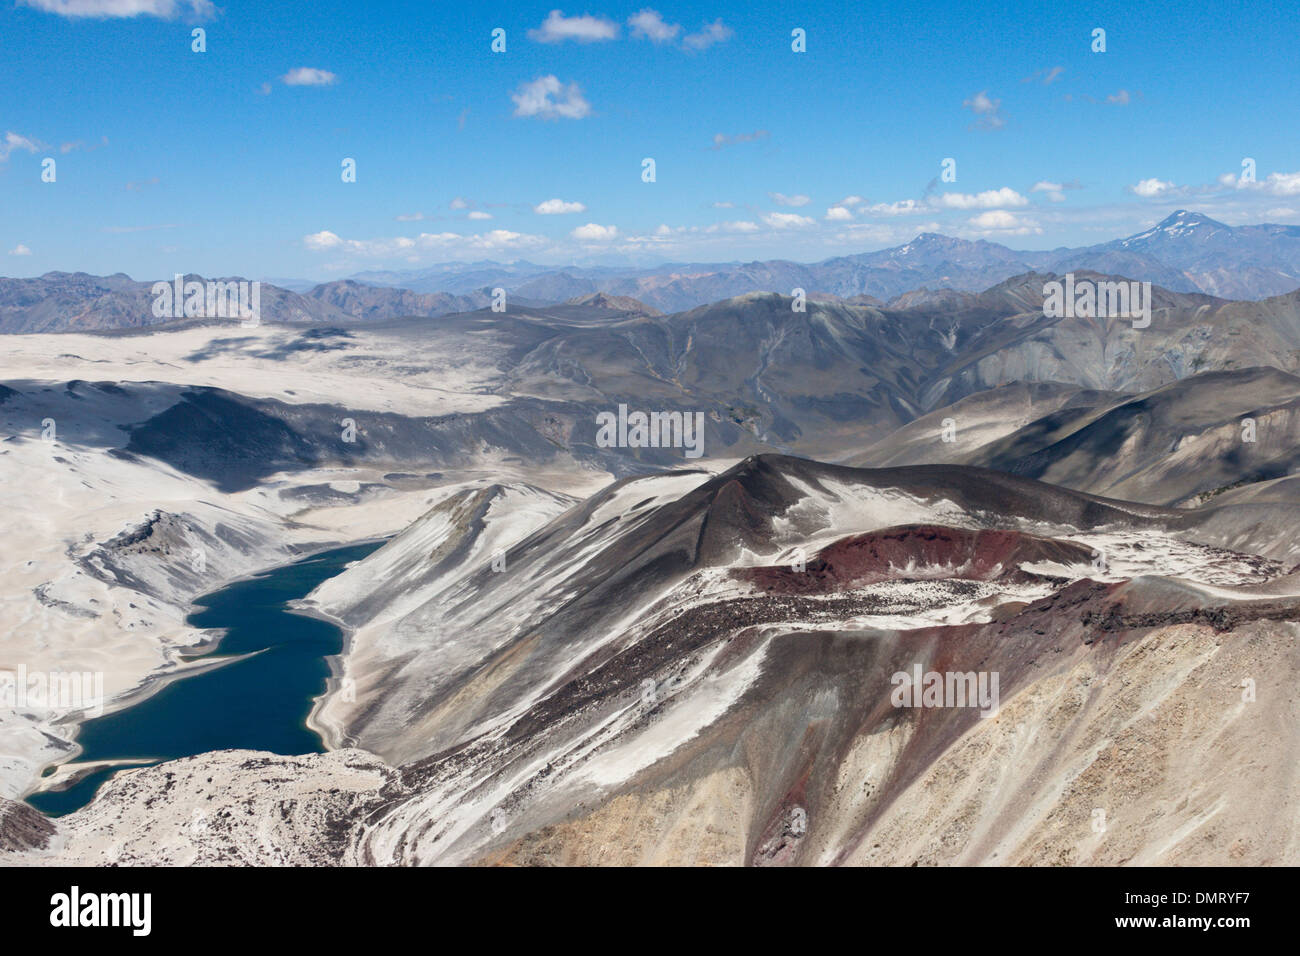 volcanco vent lava flow crater lake Andes Chile Stock Photo